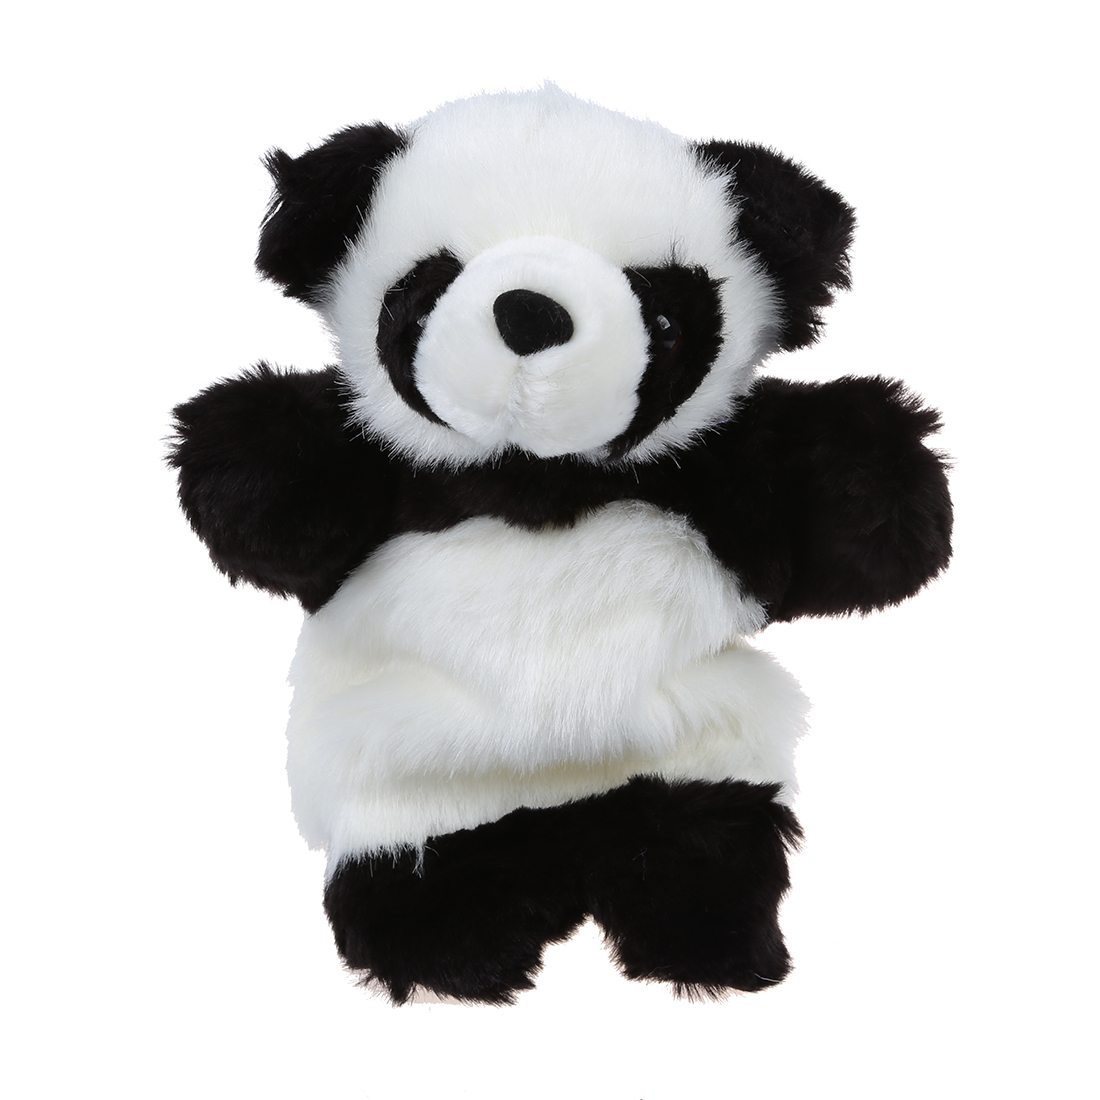 MACH Cute Panda Wildlife Hand Glove Puppet Soft Plush Puppets Kid Childrens Toy Gift